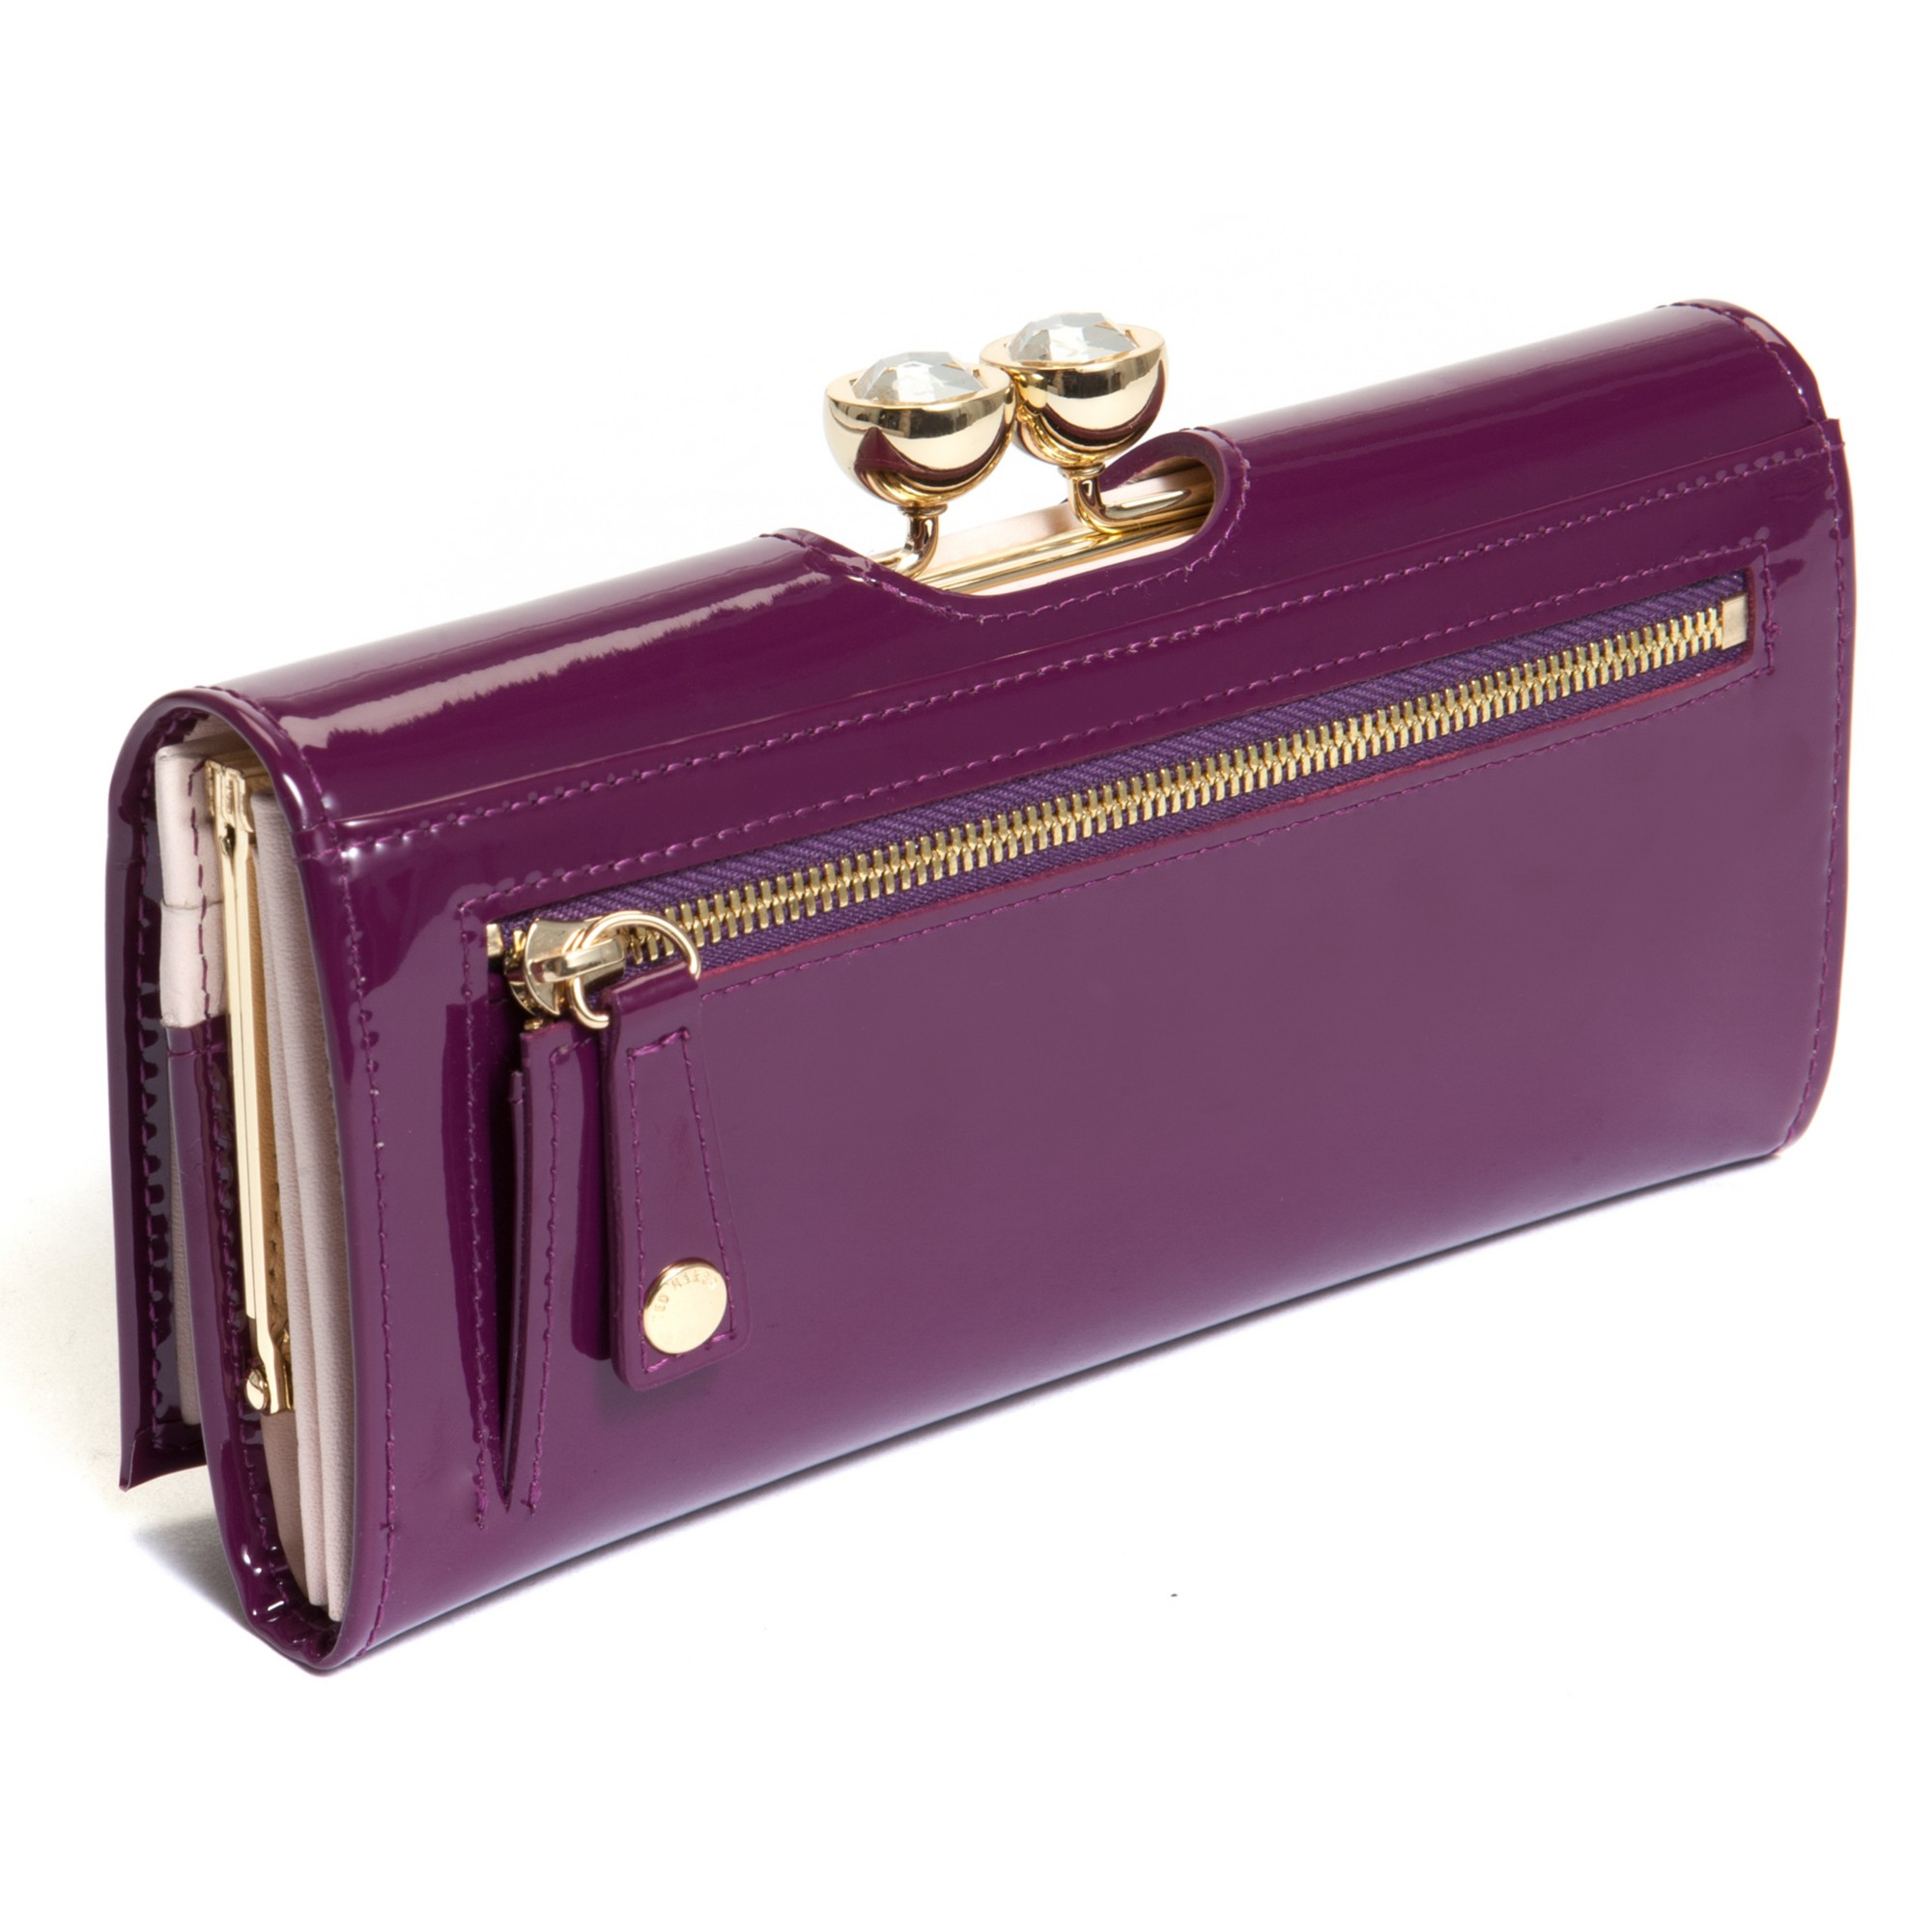 2425be72b87e Ted Baker Deep Purple Purse Best Image Ccdbb. Gallery. Ted Baker Lottay Small  Patent Leather Purse In Purple Lyst